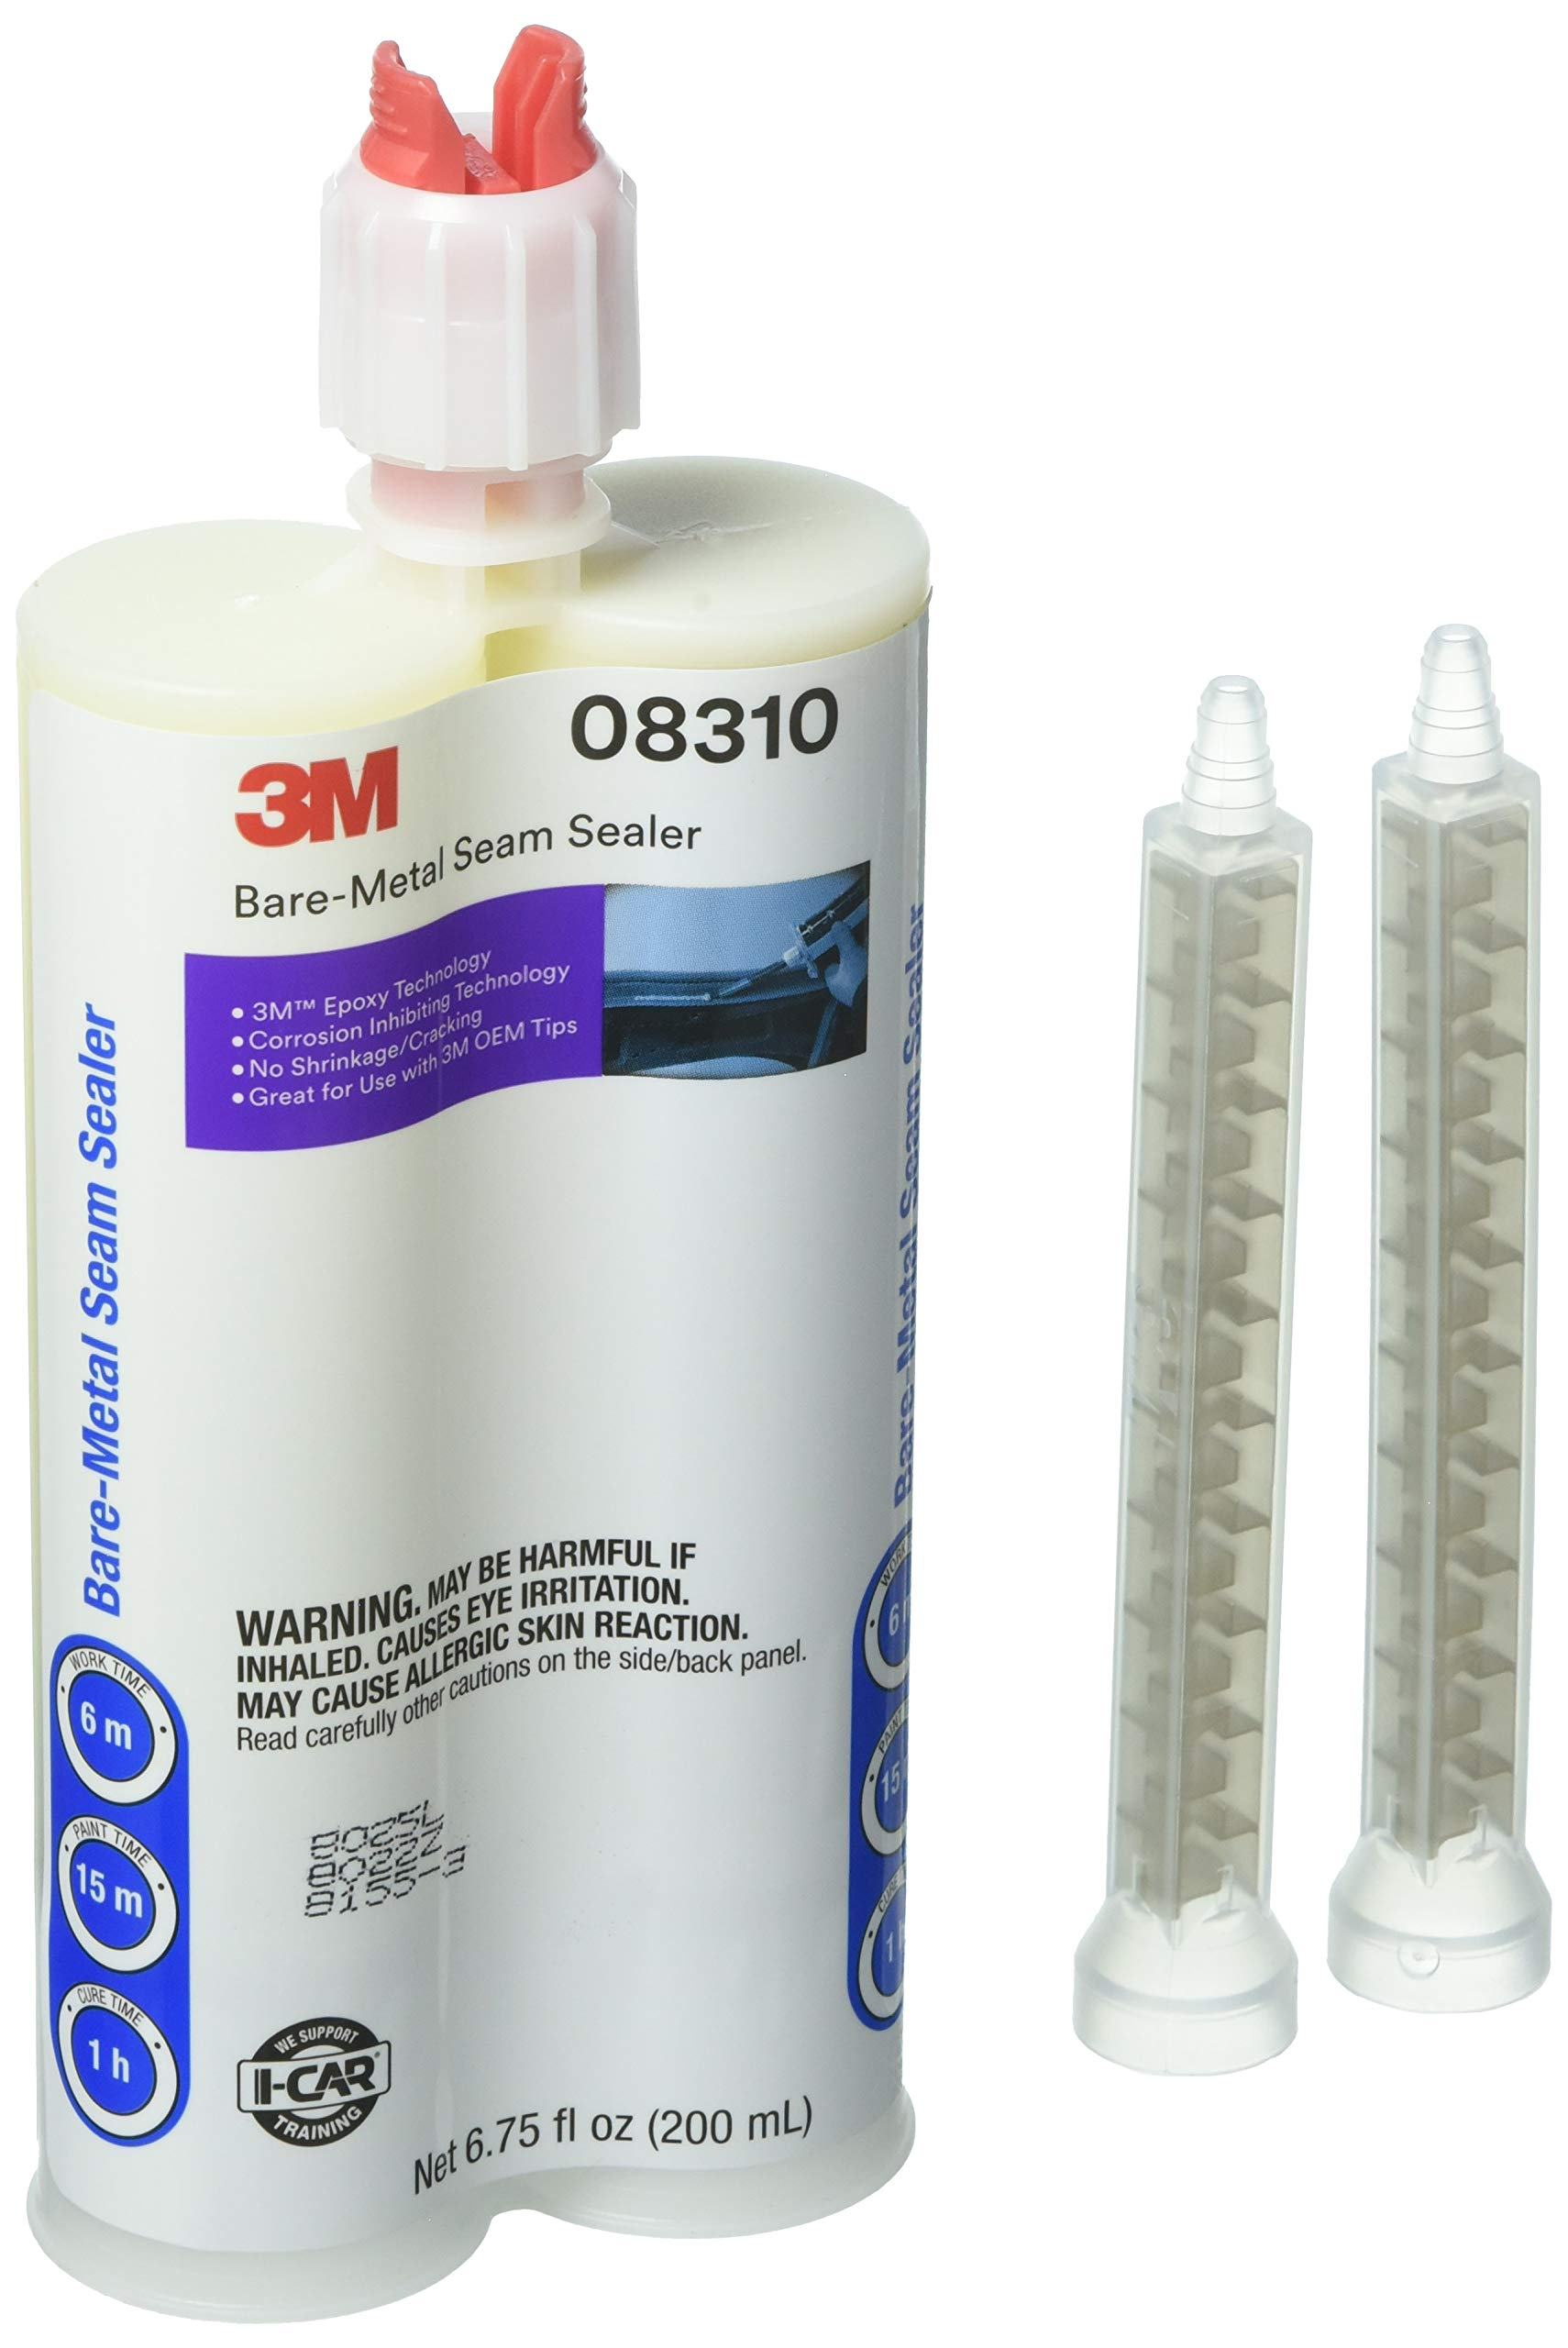 3M 08310 Beige Bare-Metal Seam Sealer - 200 ml by 3M